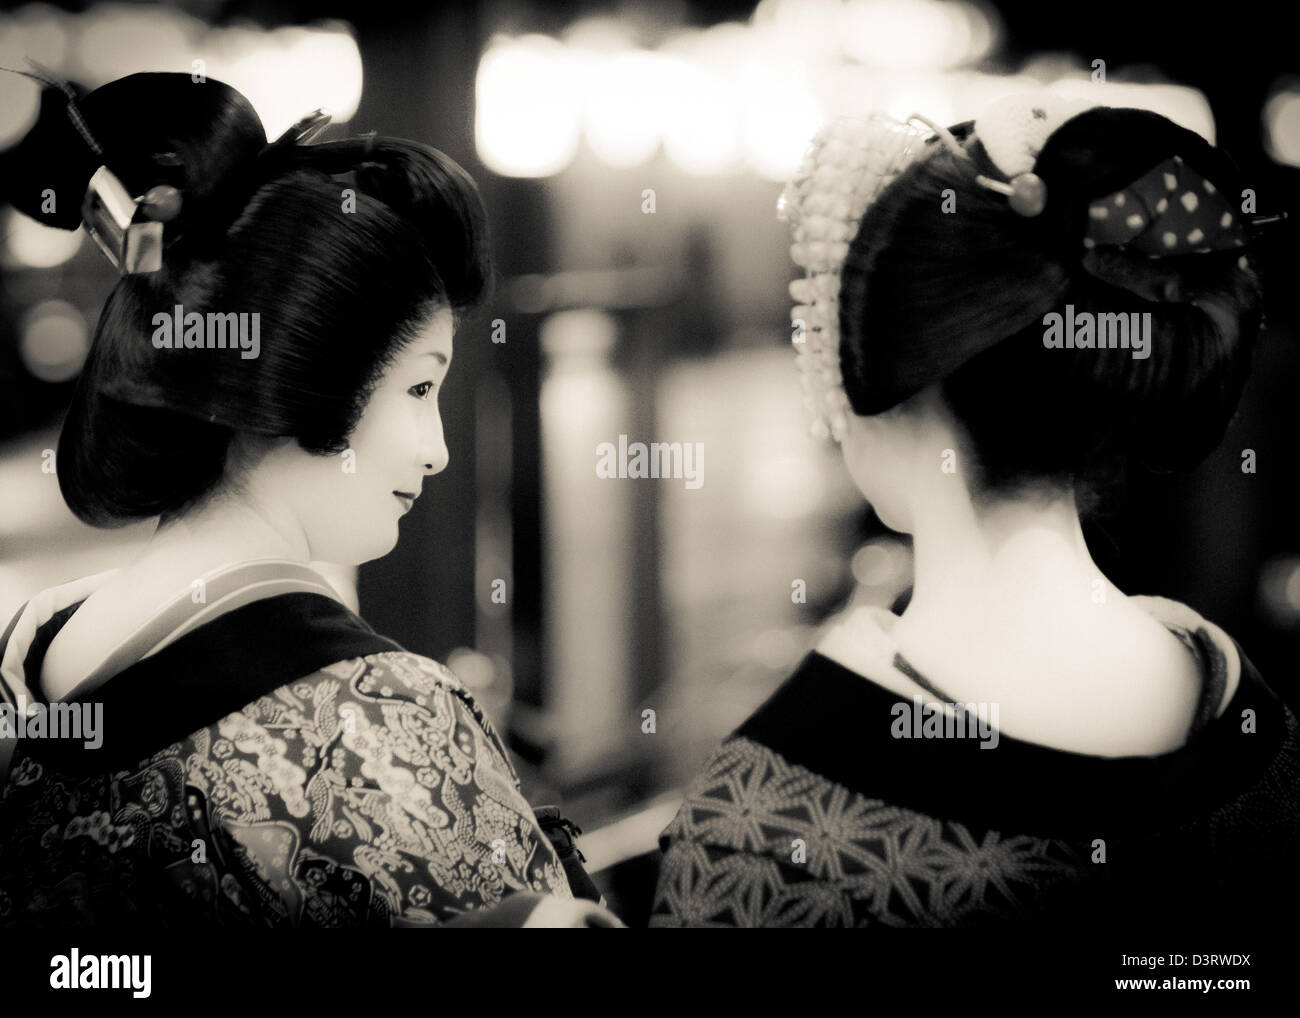 Geishas dans les rues de Kyoto, Japon Photo Stock